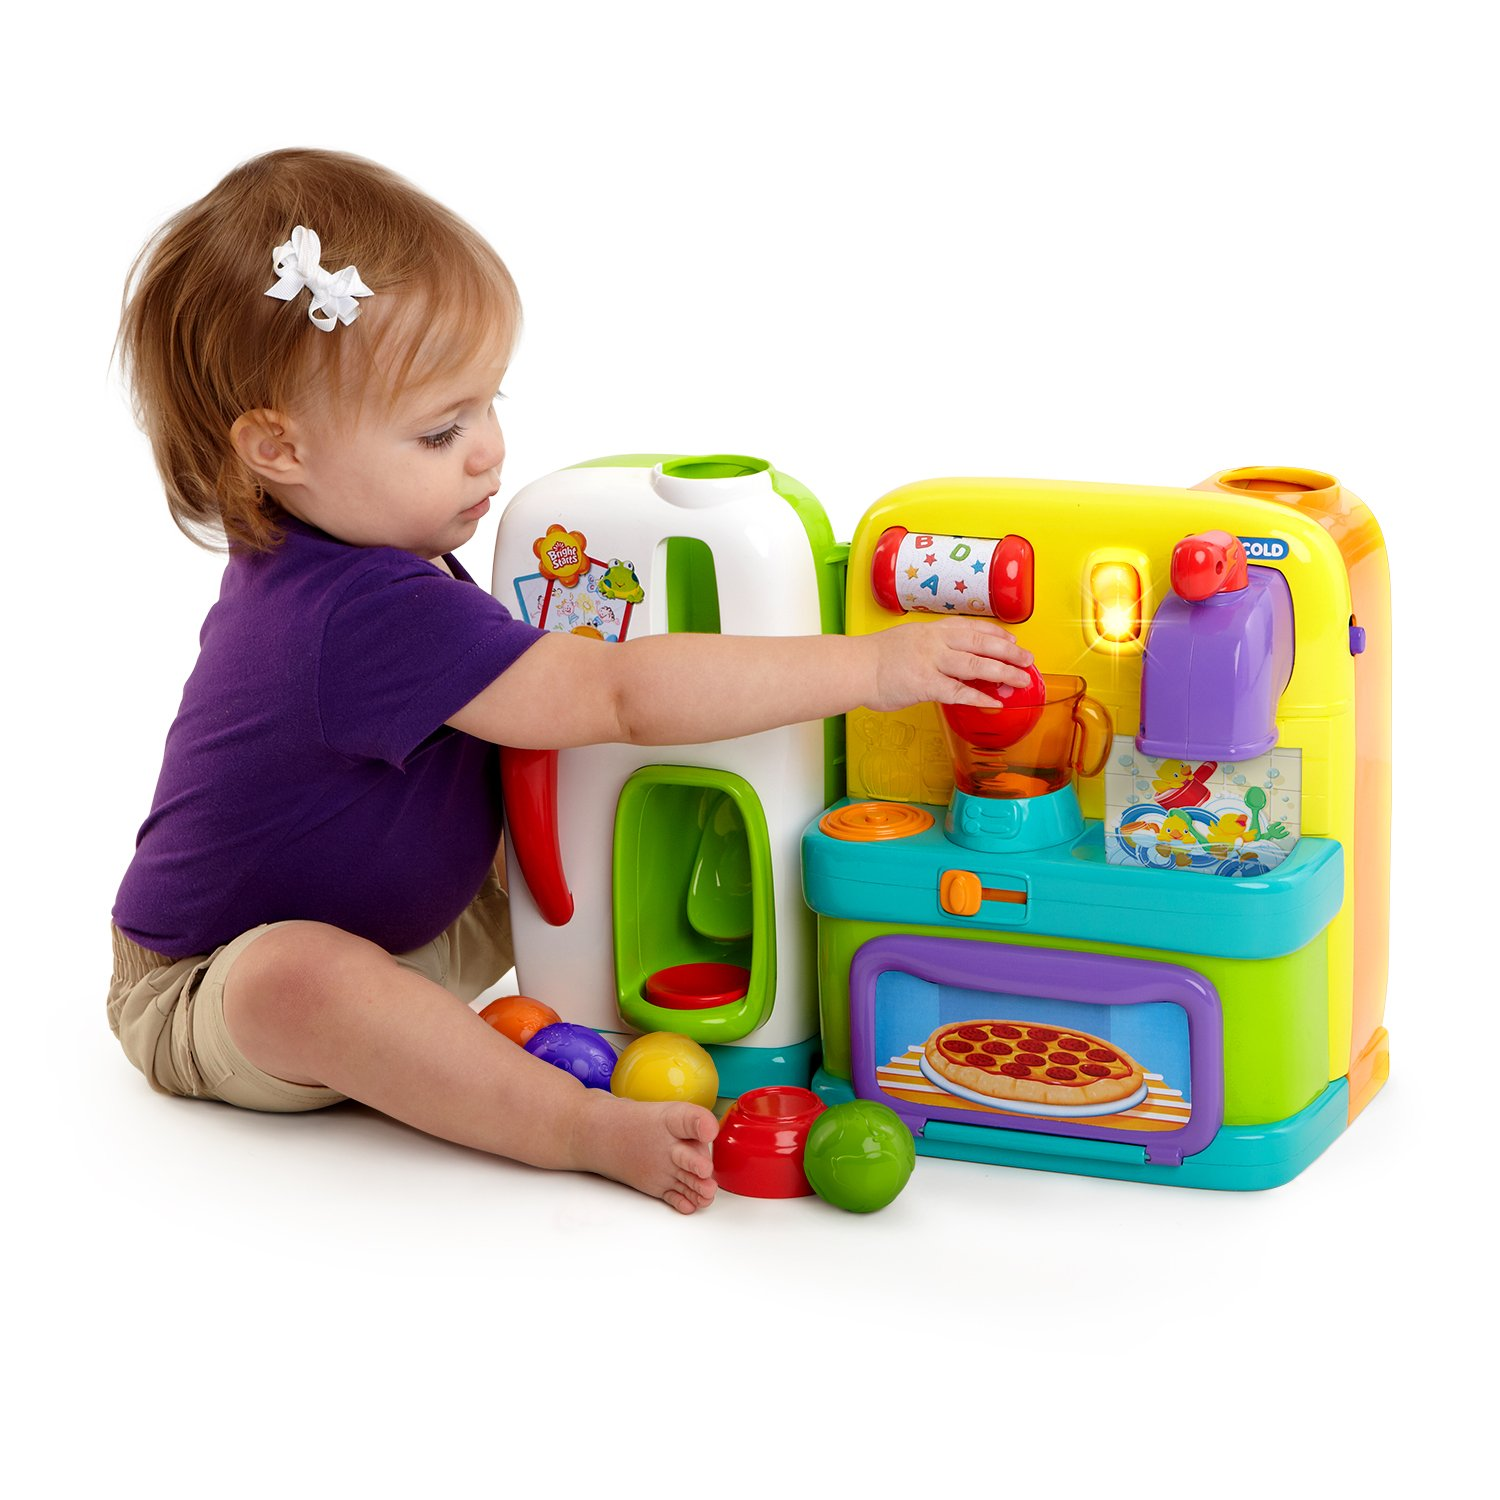 Little Tikes Shopping Cart A toy shopping cart is a must-have for every bedroom or playroom! Our durable and timeless shopping cart promotes imagination and role play.